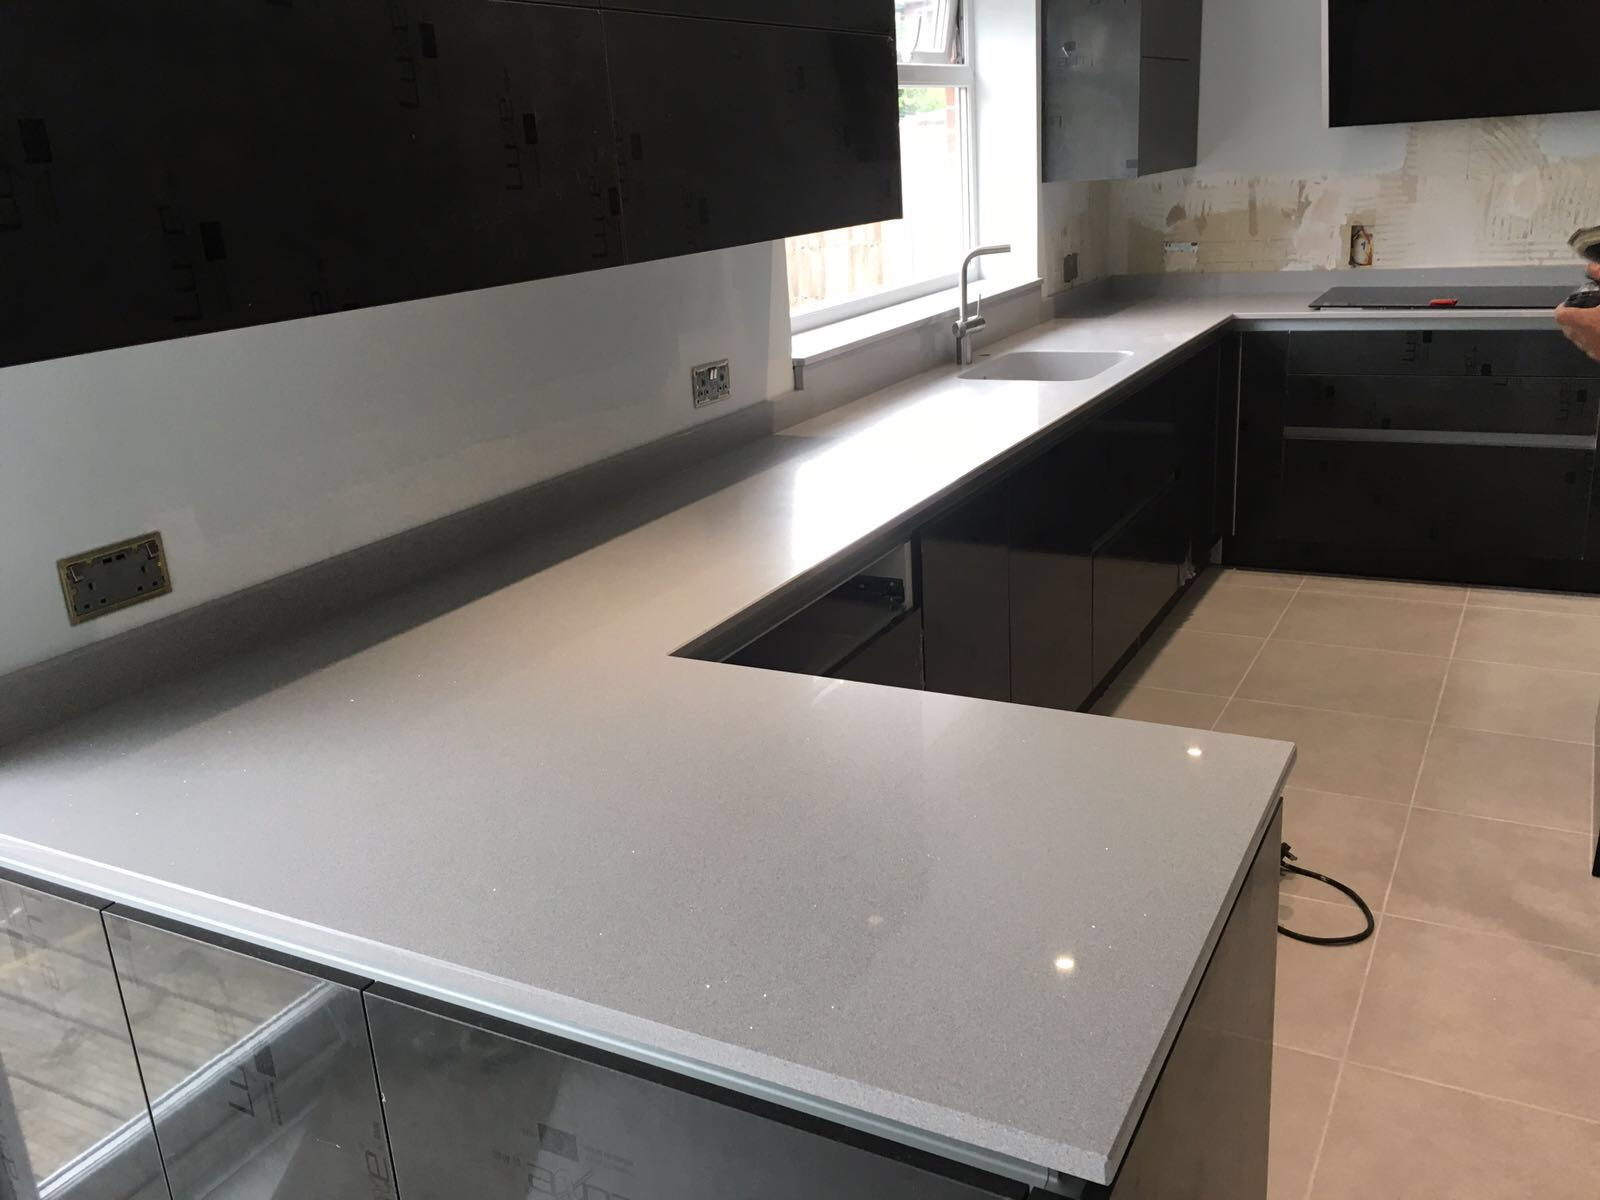 Silestone integrity sink with recess drainer - Another Very Important Factor Is That Of The Joining Of Stone Or Quartz Worktops And That It Is Done Correctly Utilising The Best Equipment And Procedures